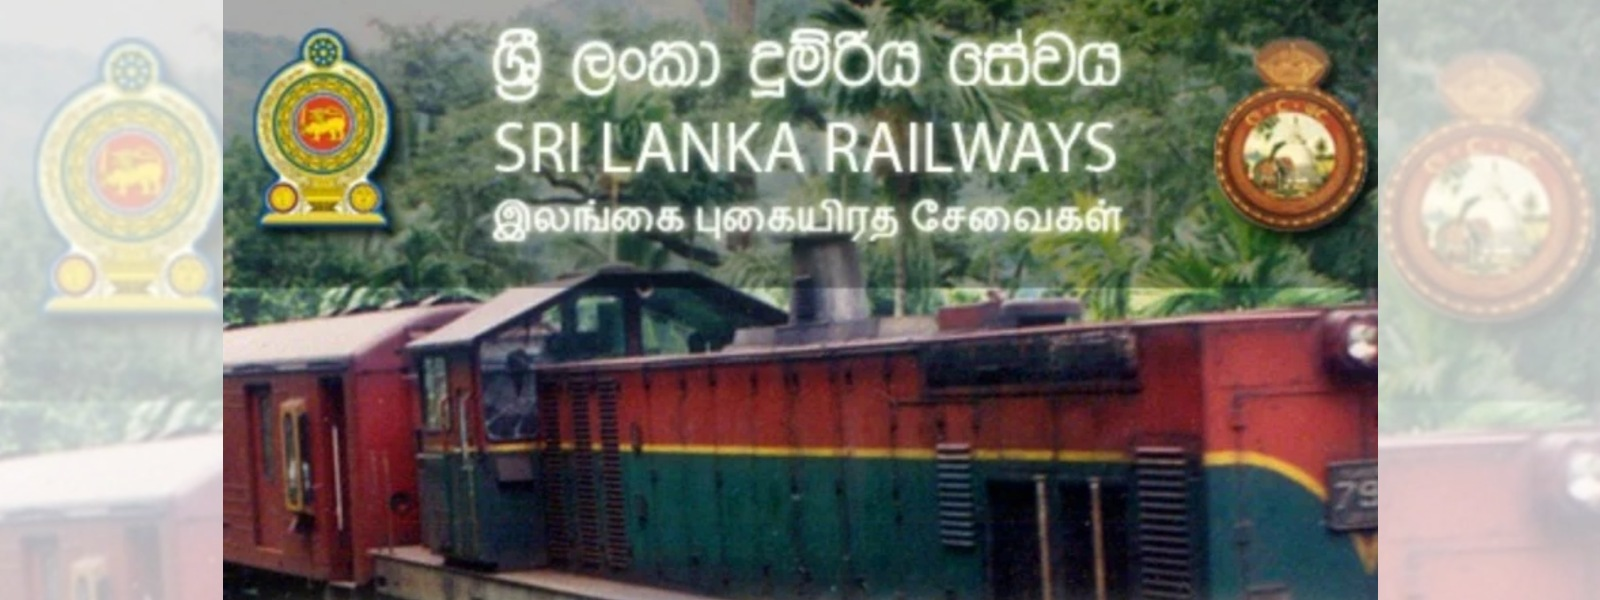 LONG-DISTANCE TRAINS TO RESUME OPERATIONS